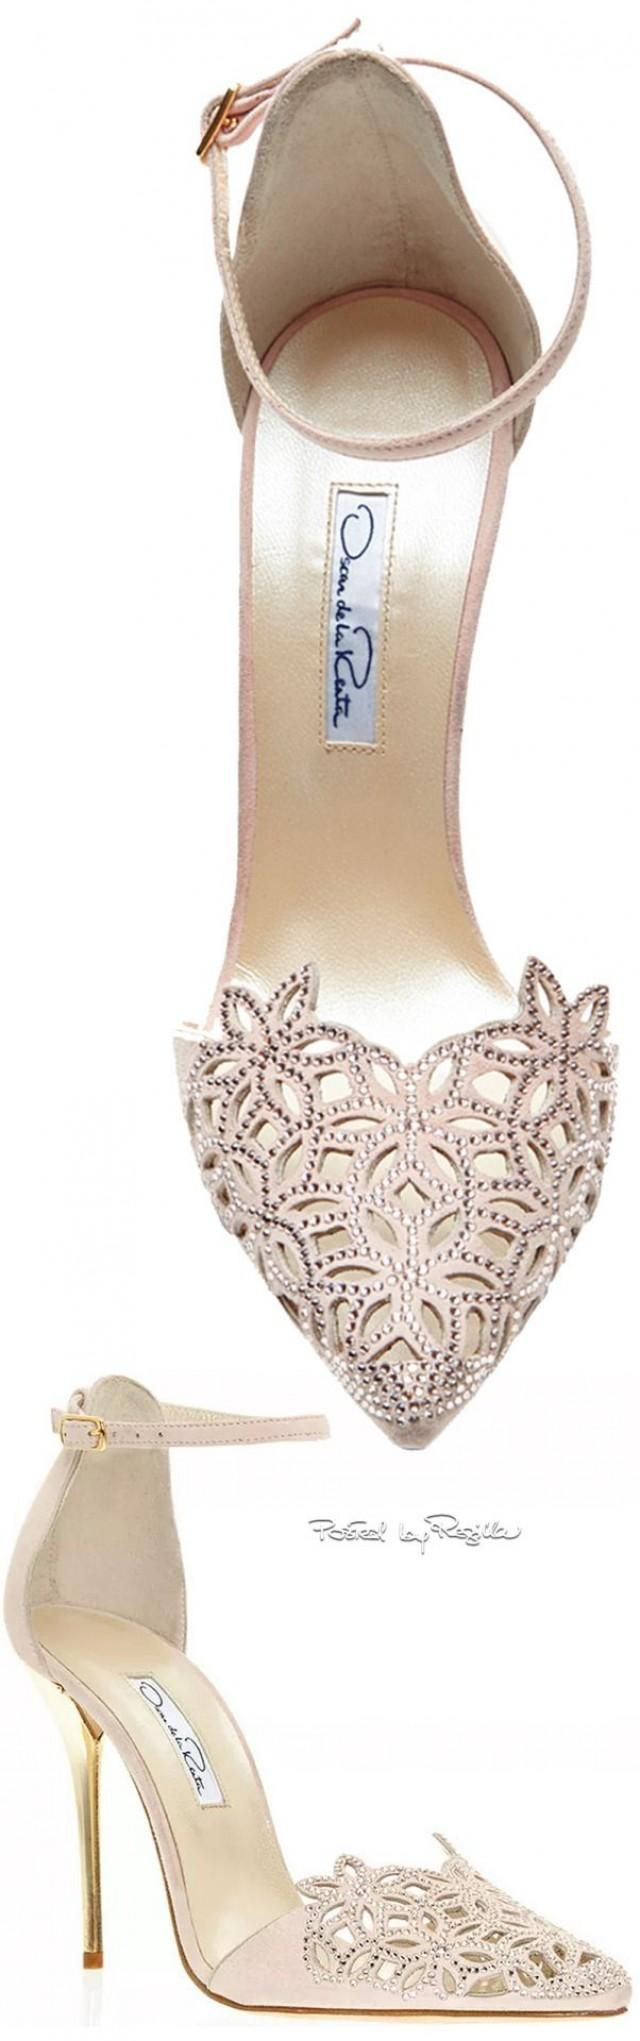 Oscar de la renta pointed toe wedding shoes in champagne color with laser cut leather